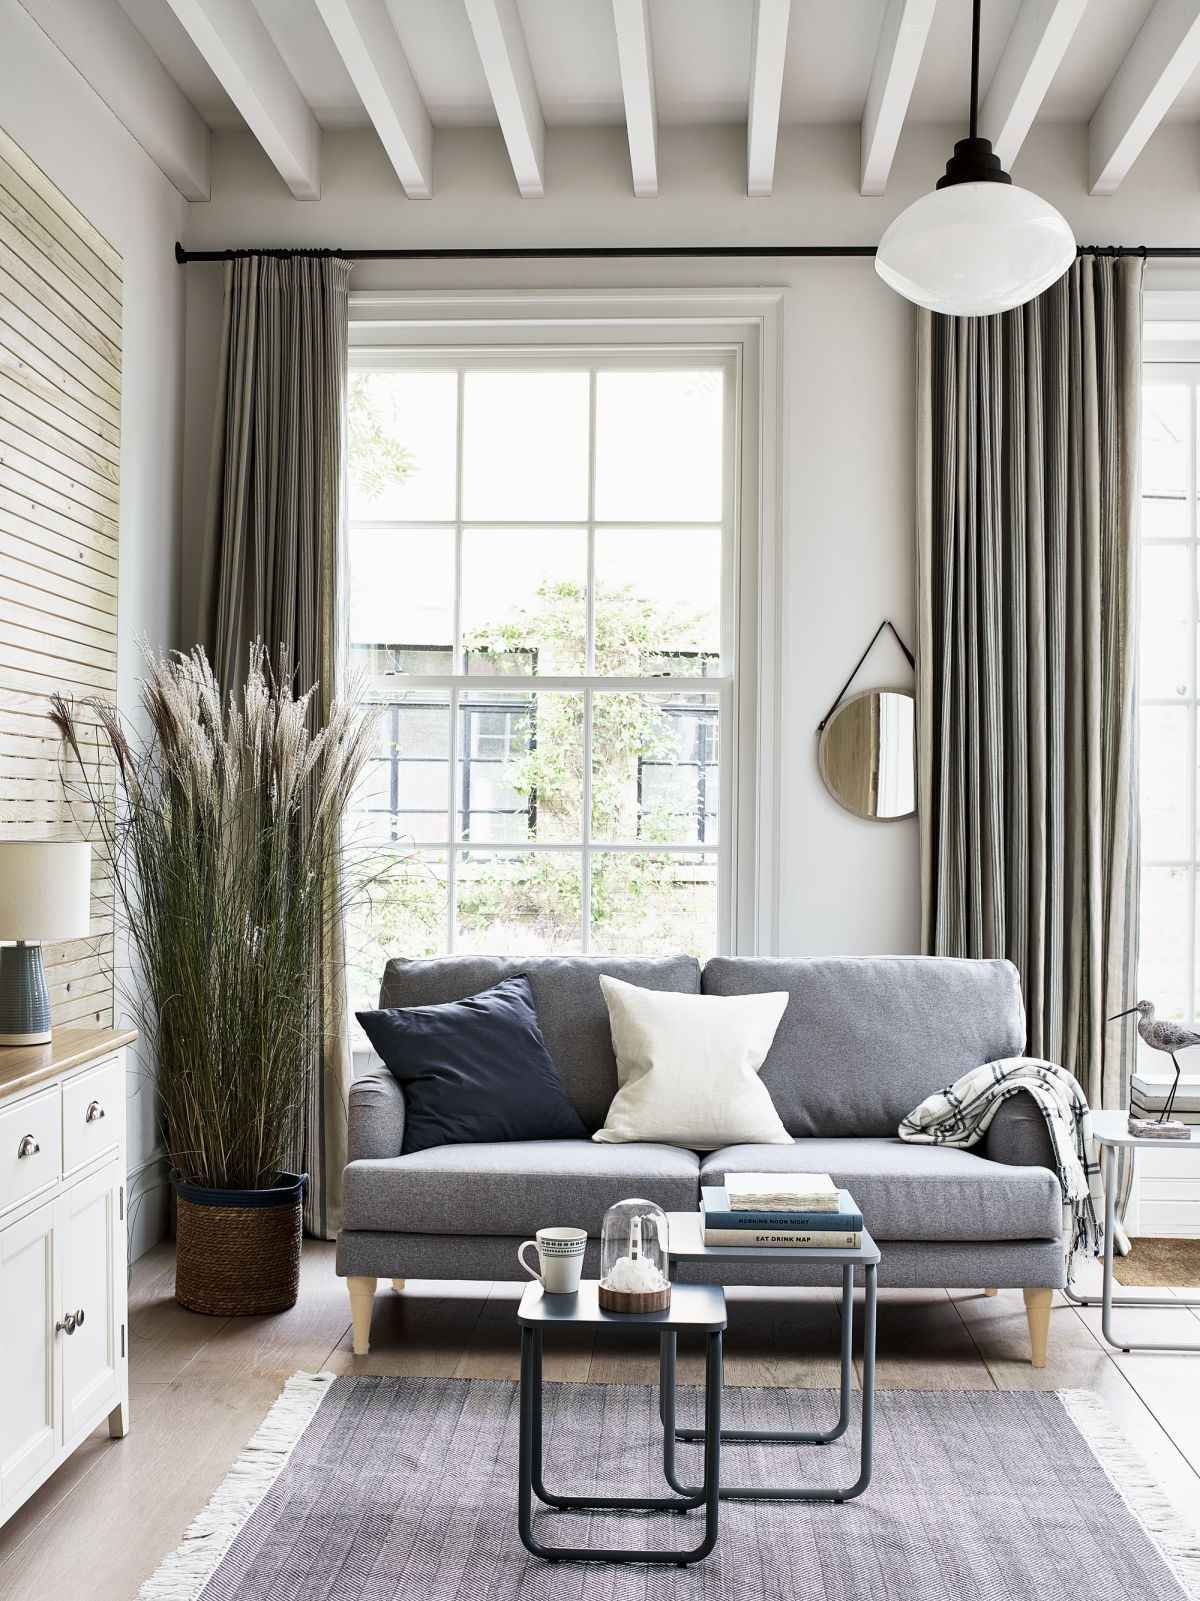 Grey living rooms: 20 gorgeous ideas to inspire your scheme | Real Homes